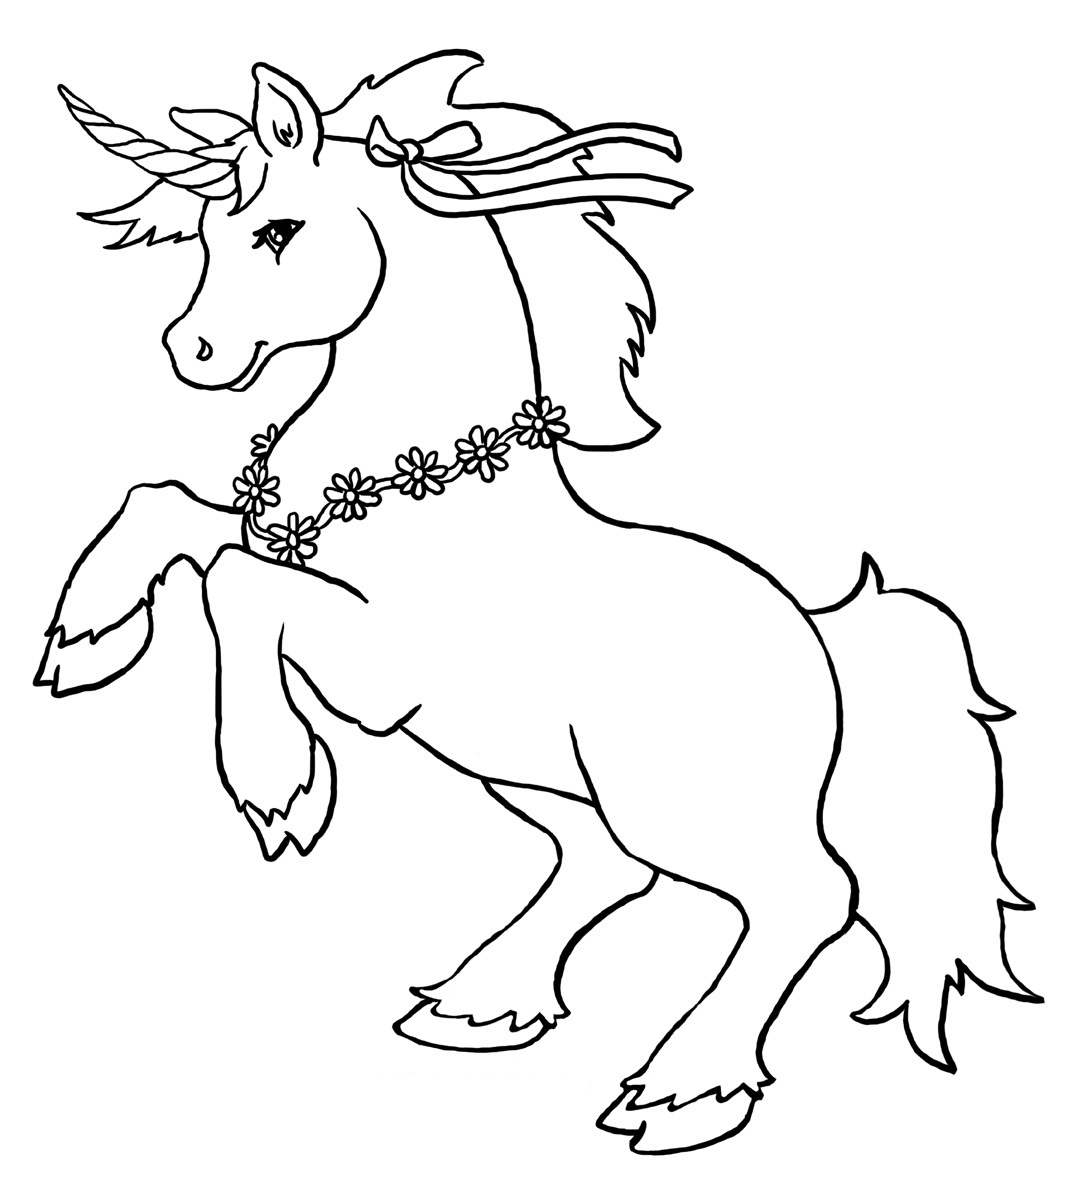 5 Images of Printable Unicorns To Color